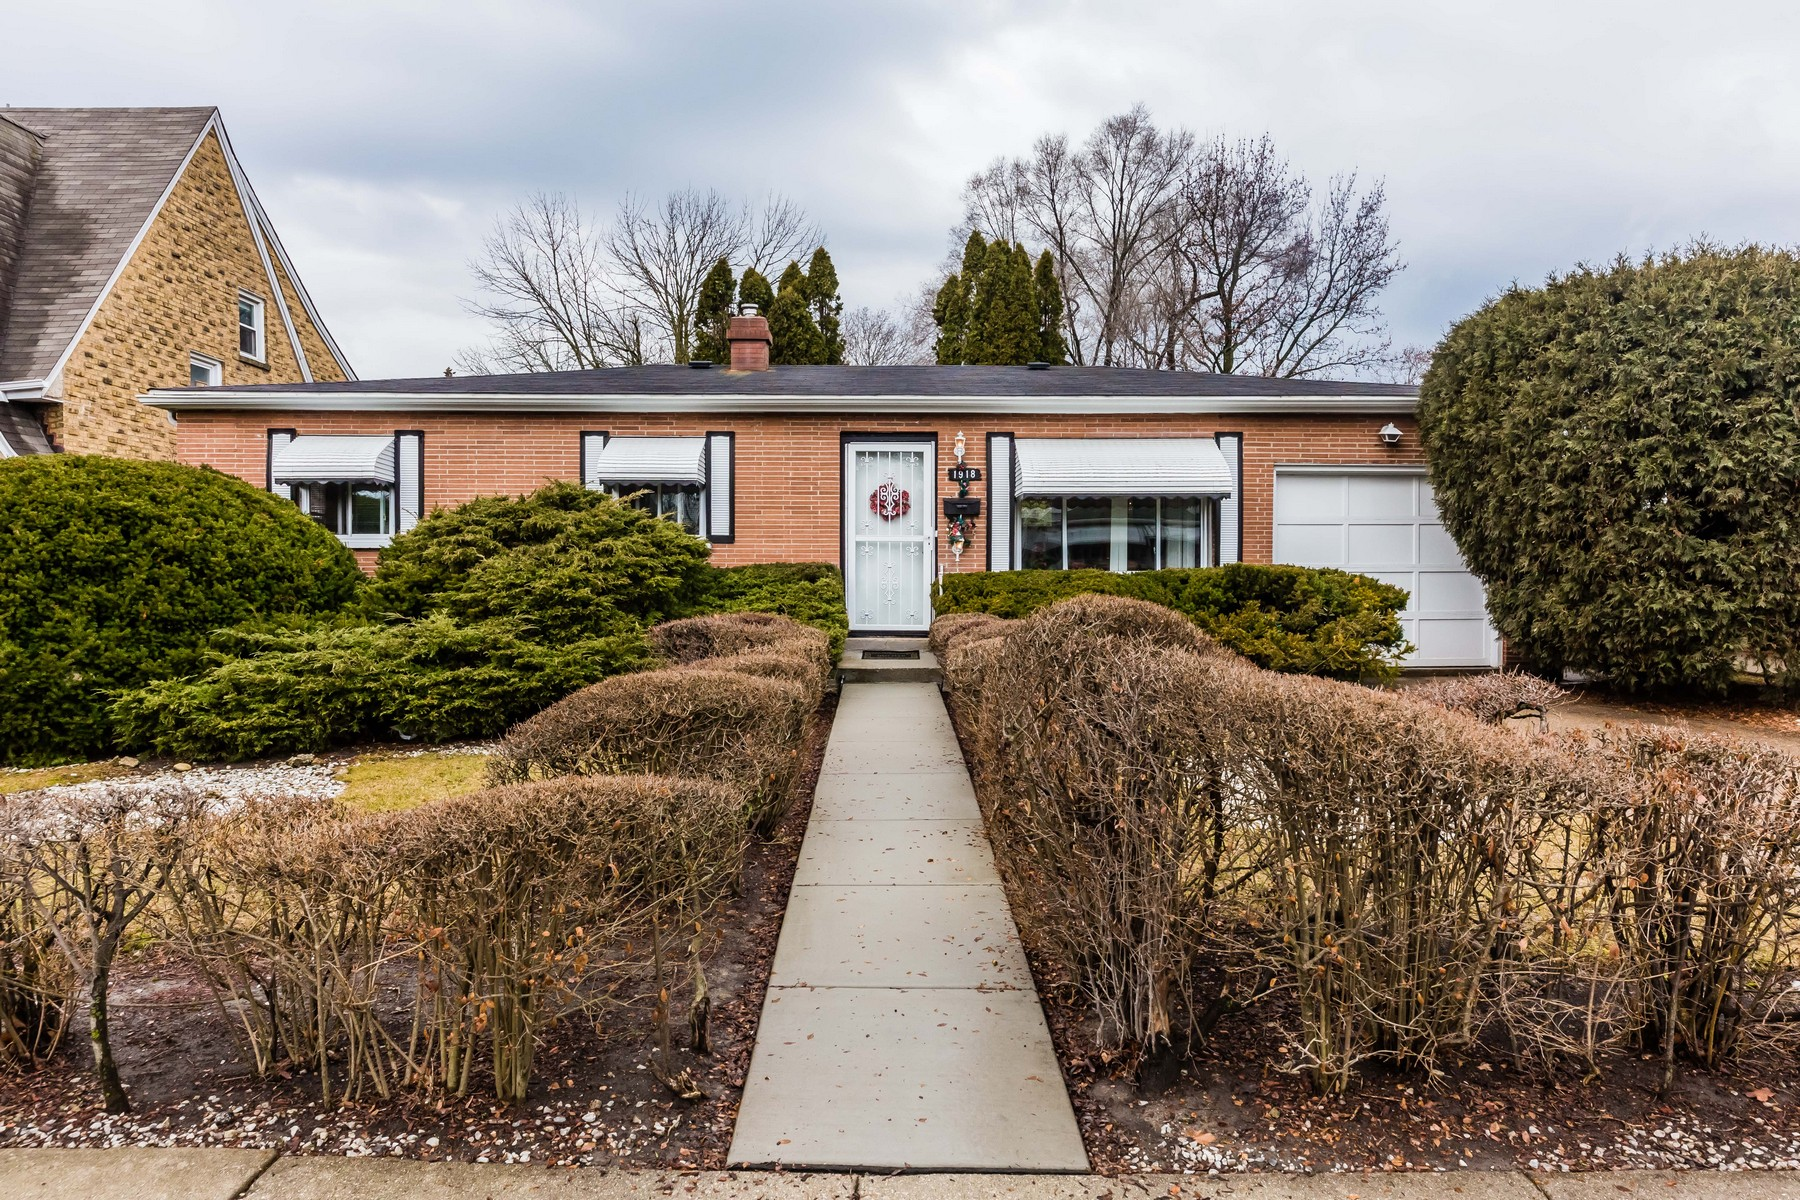 Single Family Home for Sale at Great brick ranch 1918 Brown Avenue, Evanston, Illinois, 60201 United States